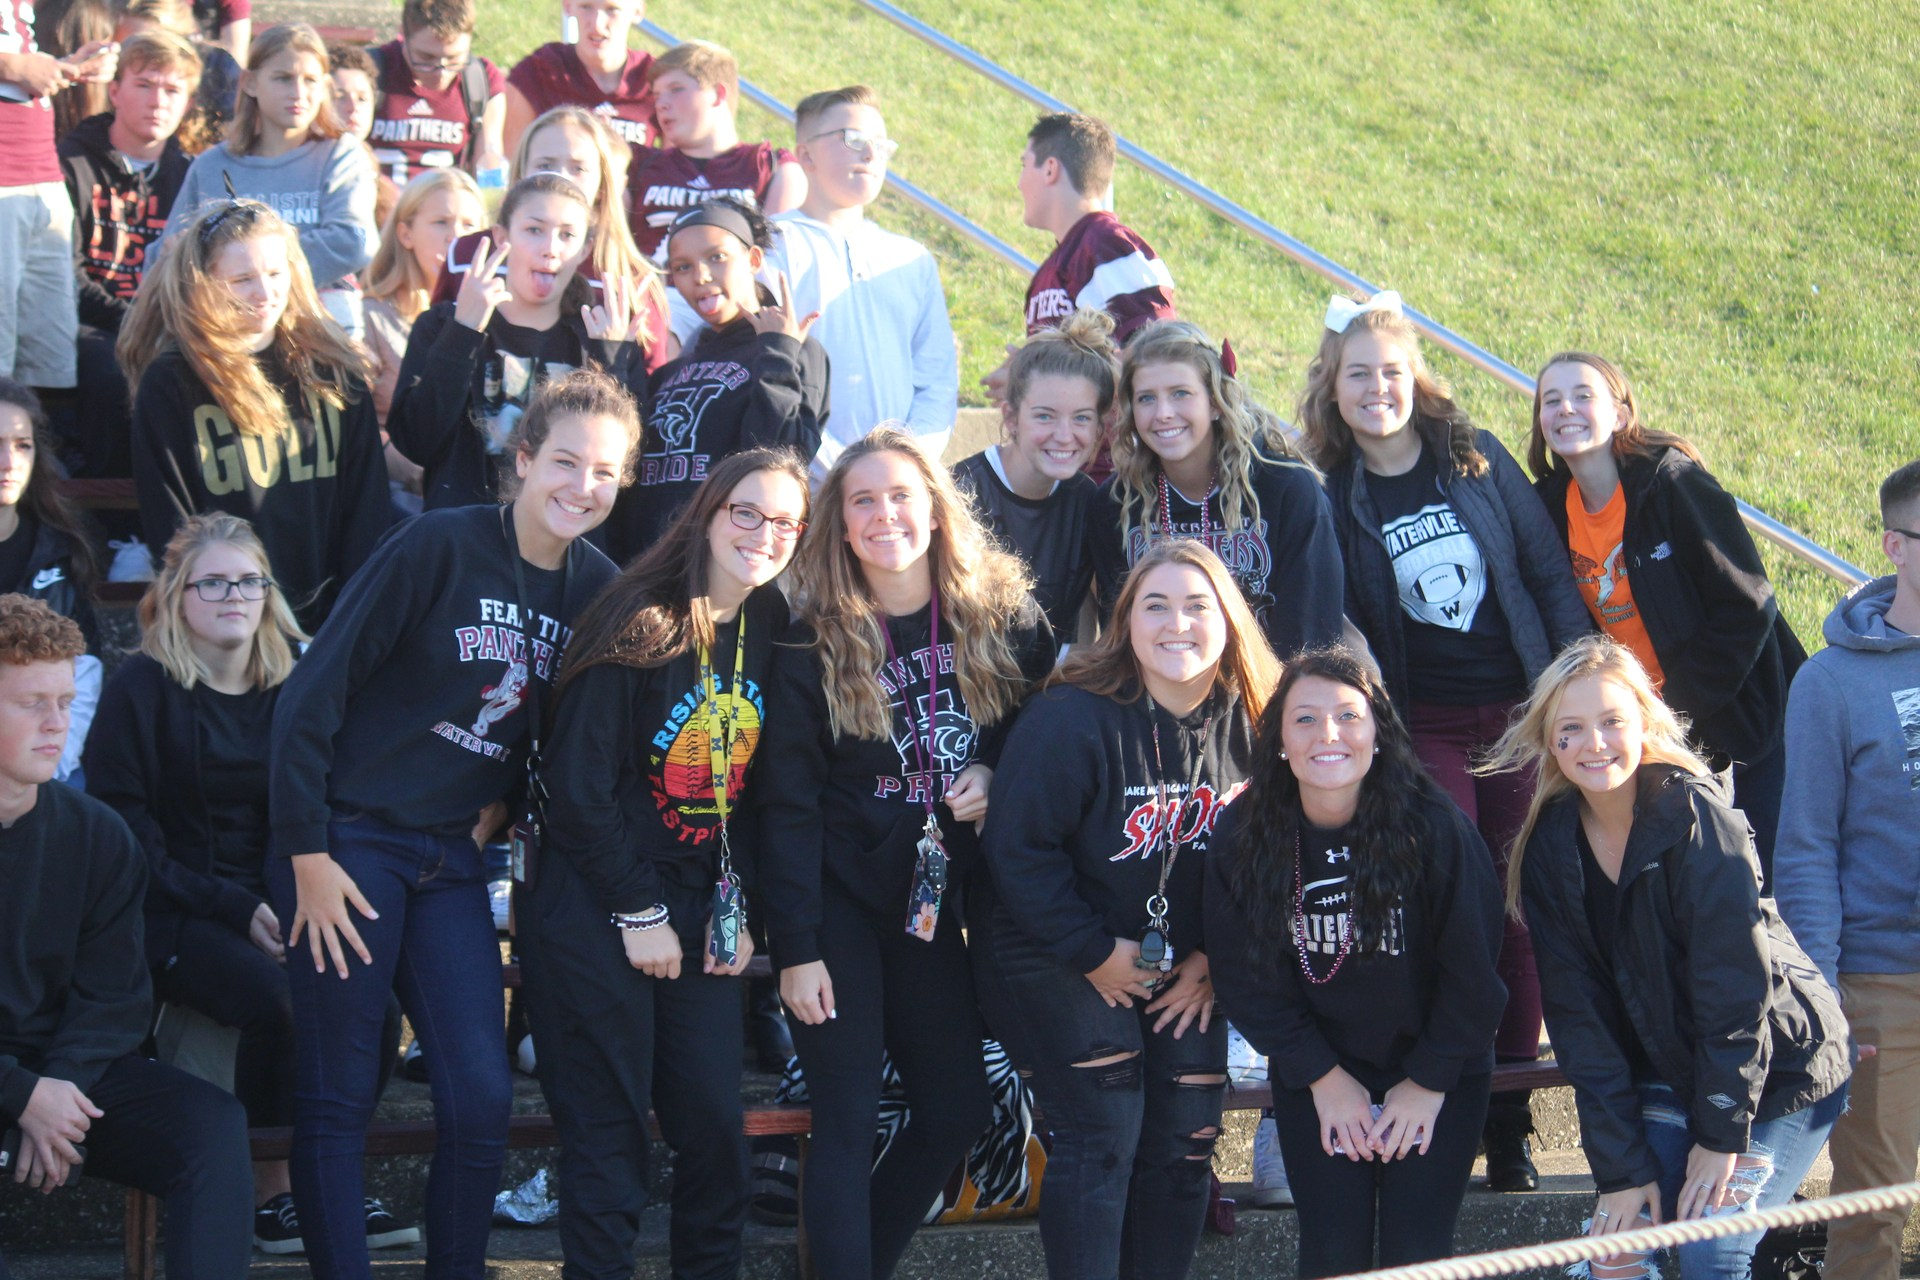 students posing at football game